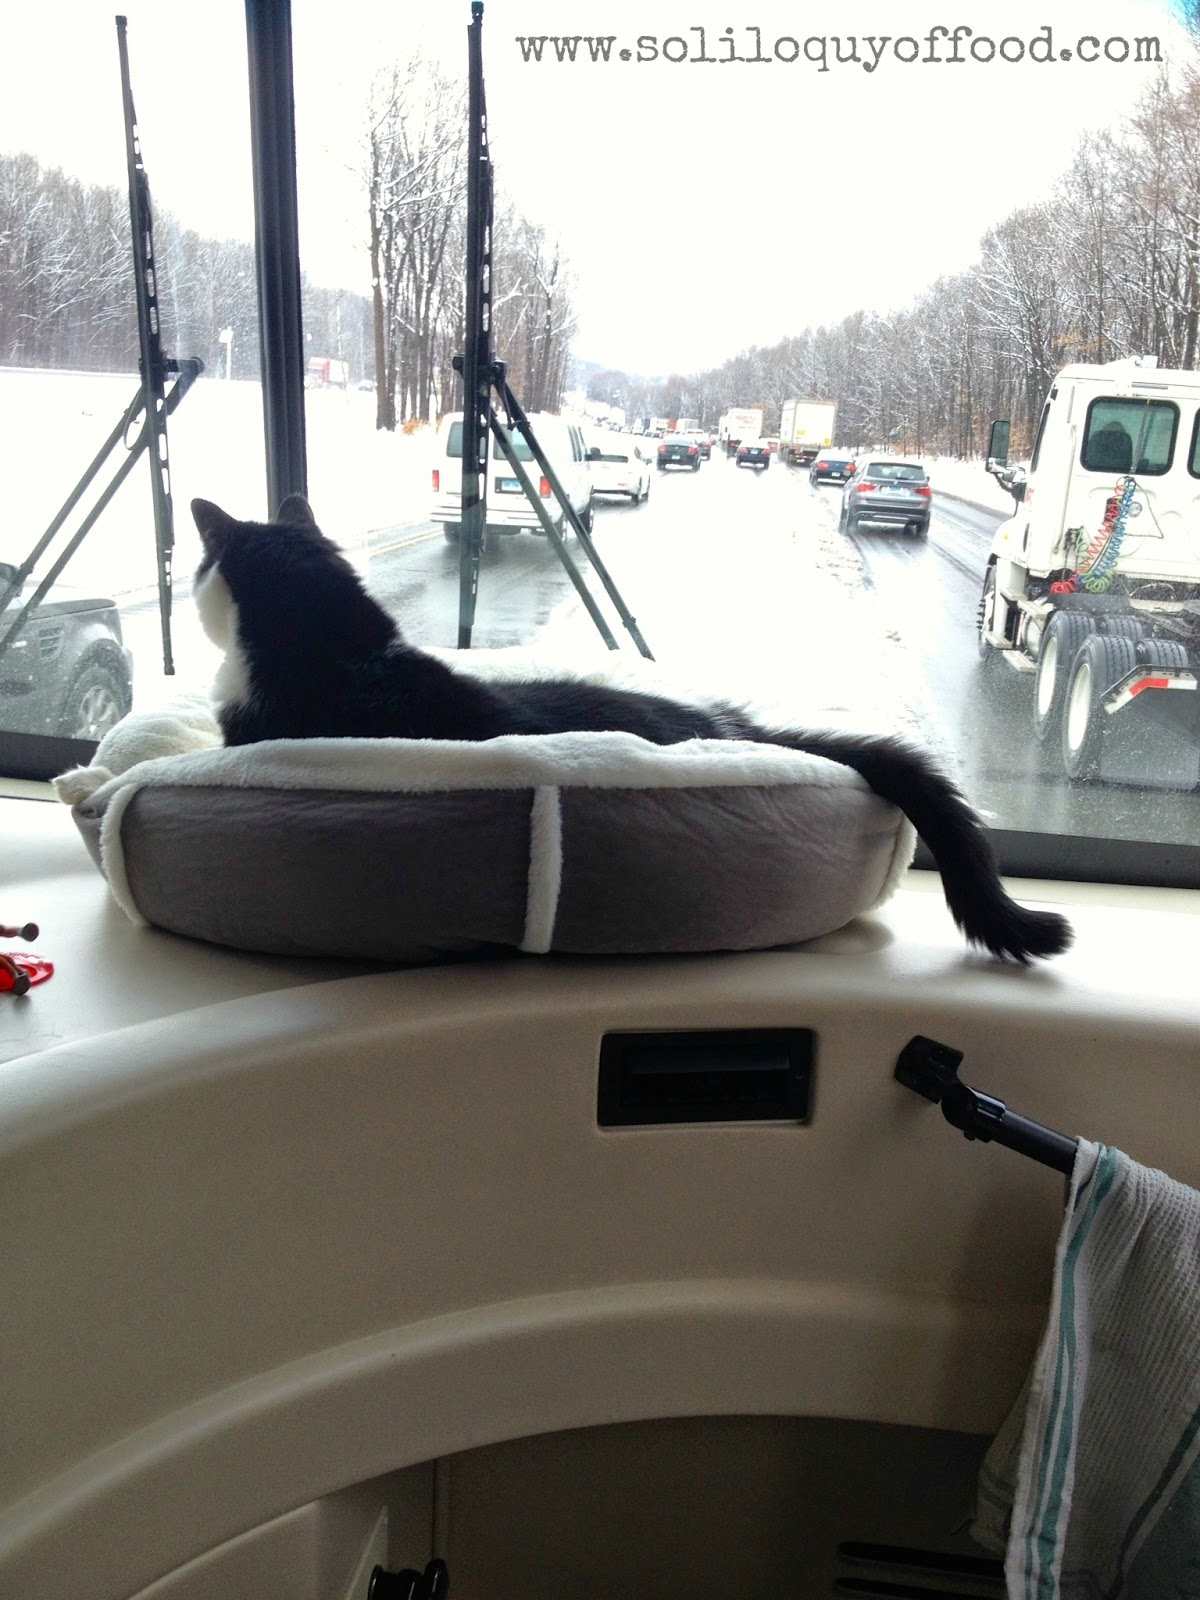 Chaos On Wheels - Duke has a primo seat as we head to PA - www.soliloquyoffood.com